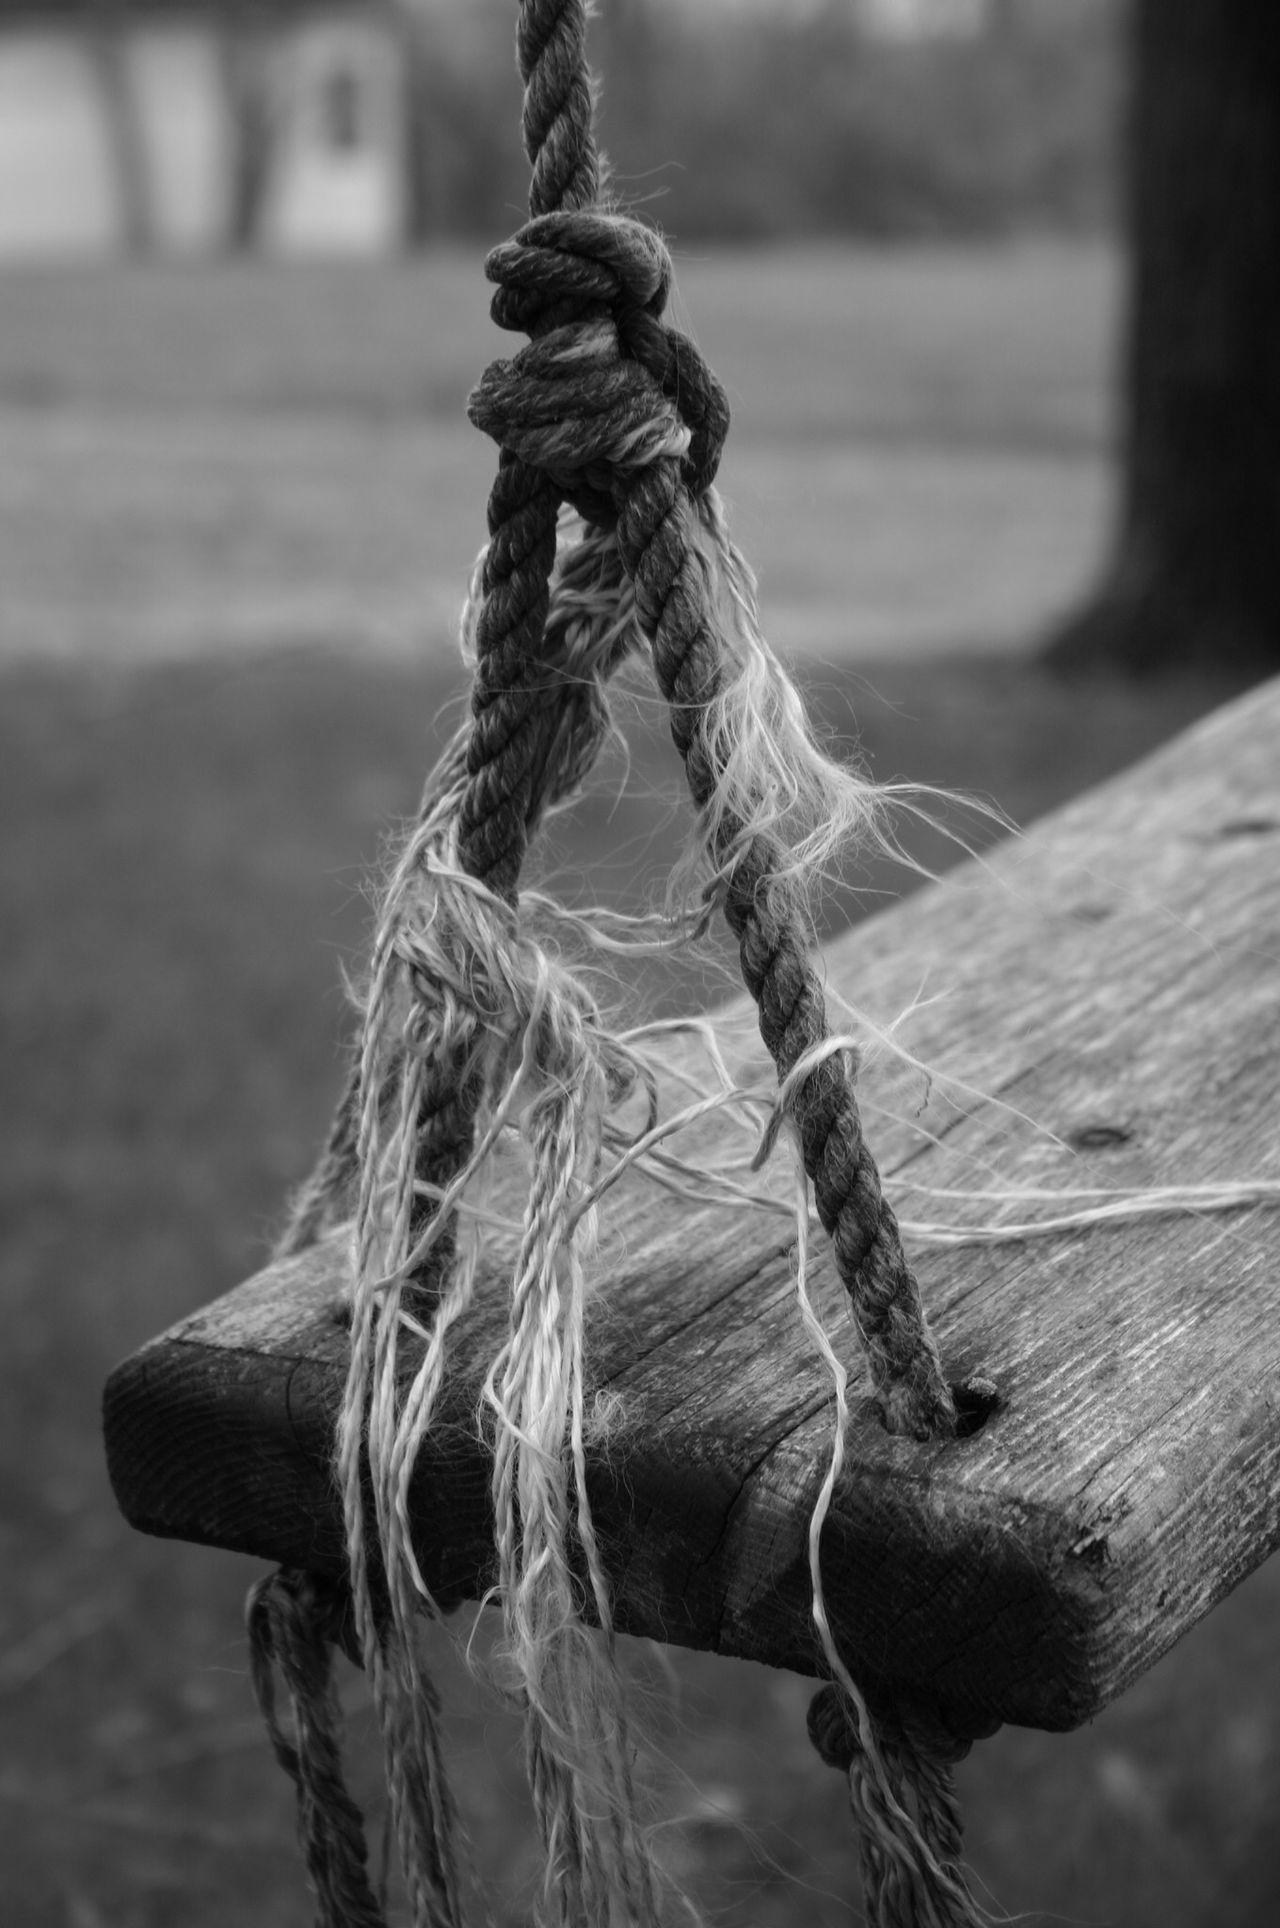 Abandoned Alone Blackandwhite Photography Close-up Focus On Foreground Old Swing Outdoors Rope Rustic Rustic Charm Wood Wood Swing Seat